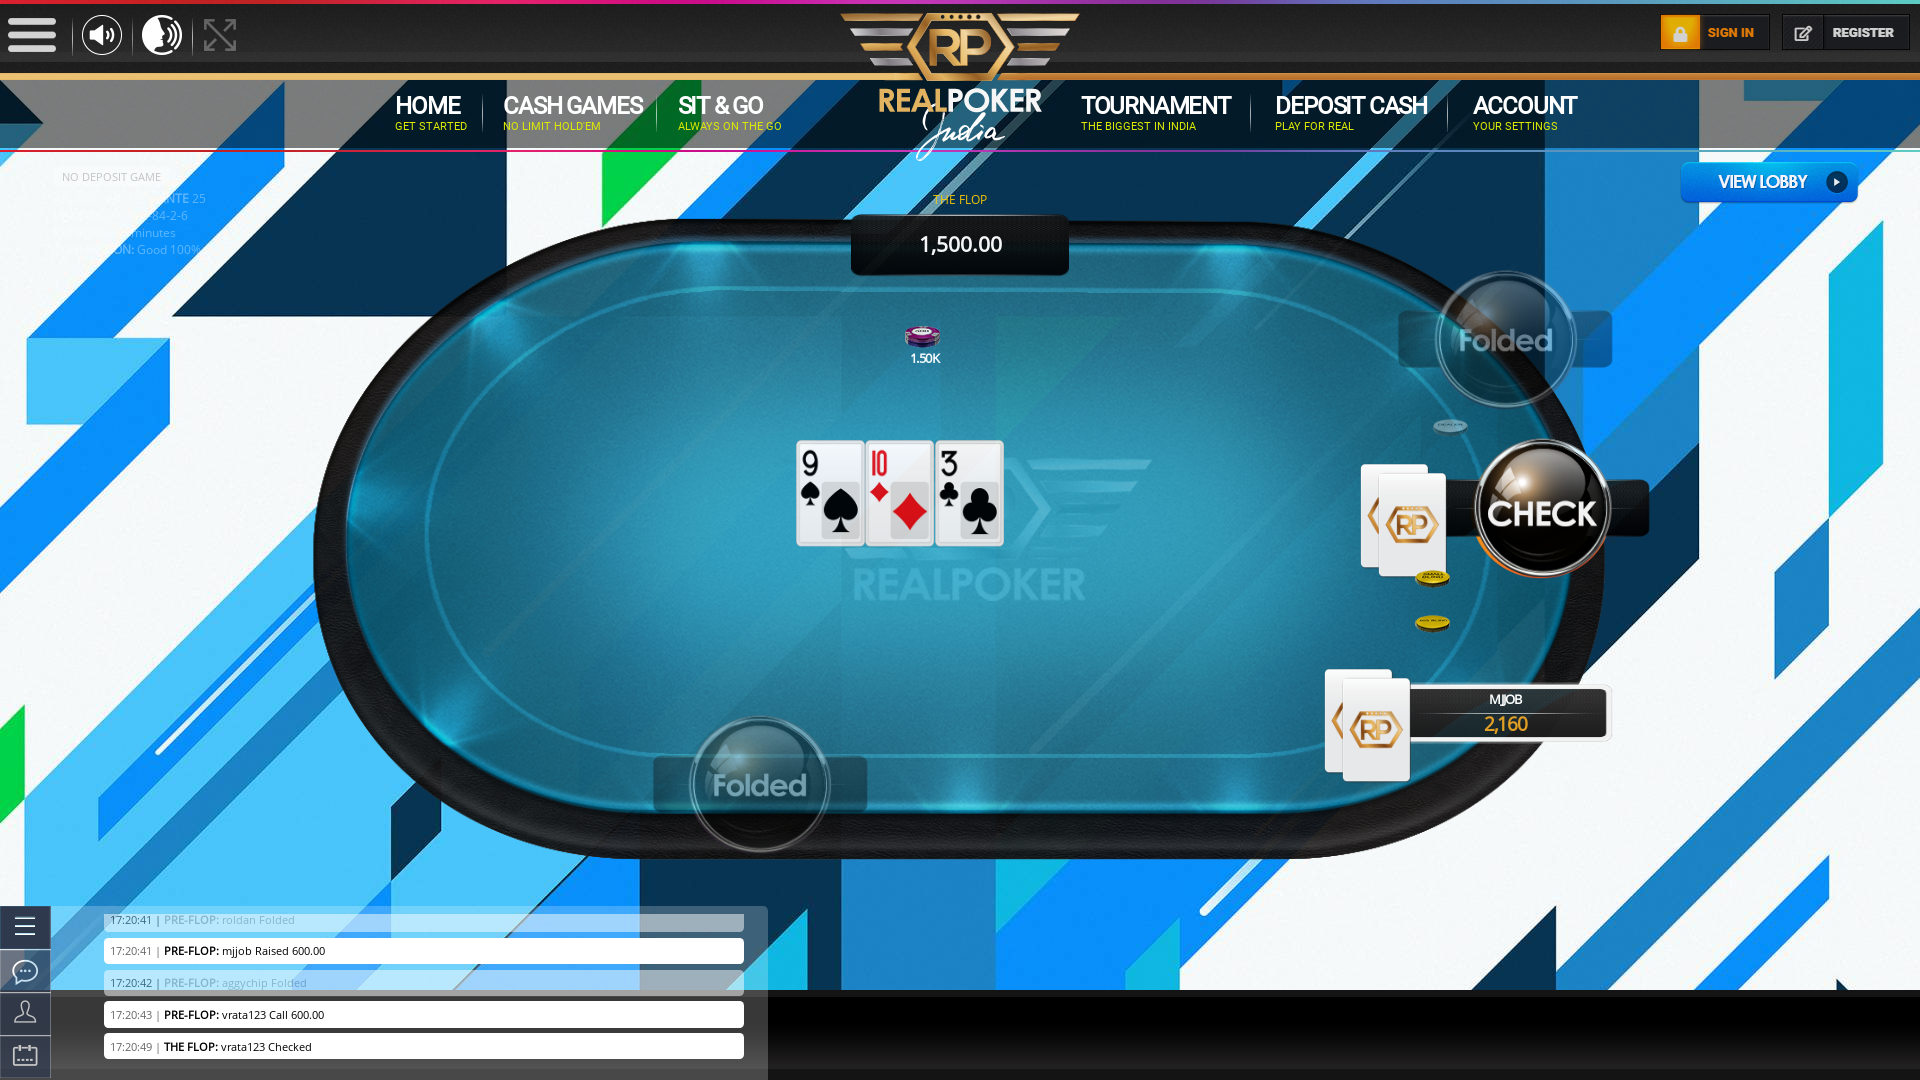 Real poker on a 10 player table in the 49th minute of the game